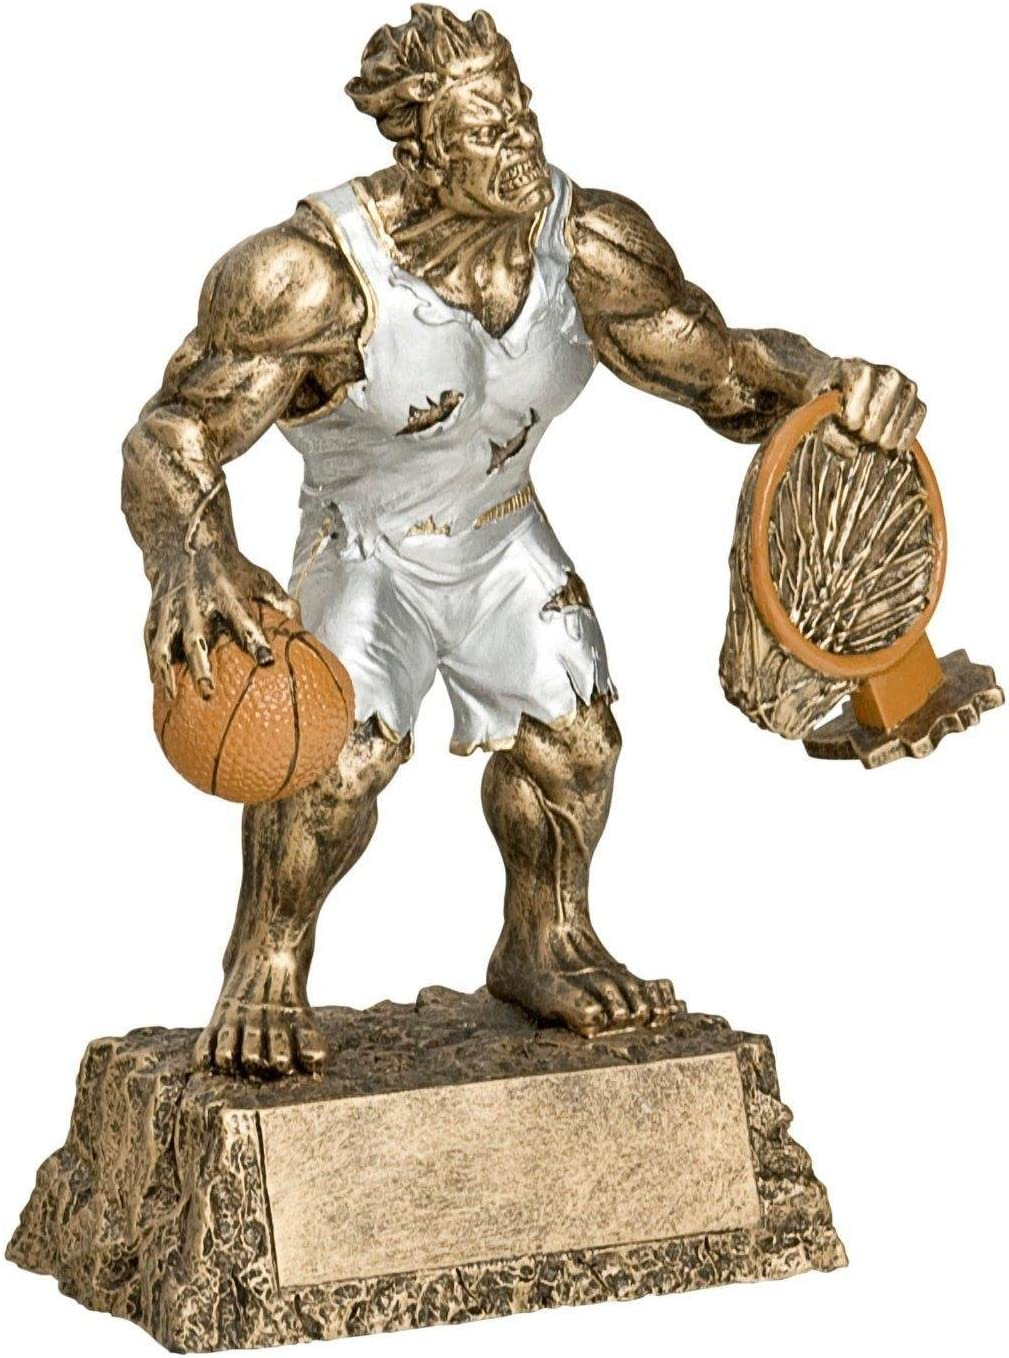 Decade Awards Basketball Monster Trophy - Triumphant Beast Basketball Award -| 6.75 Inch Tall - Customize Now